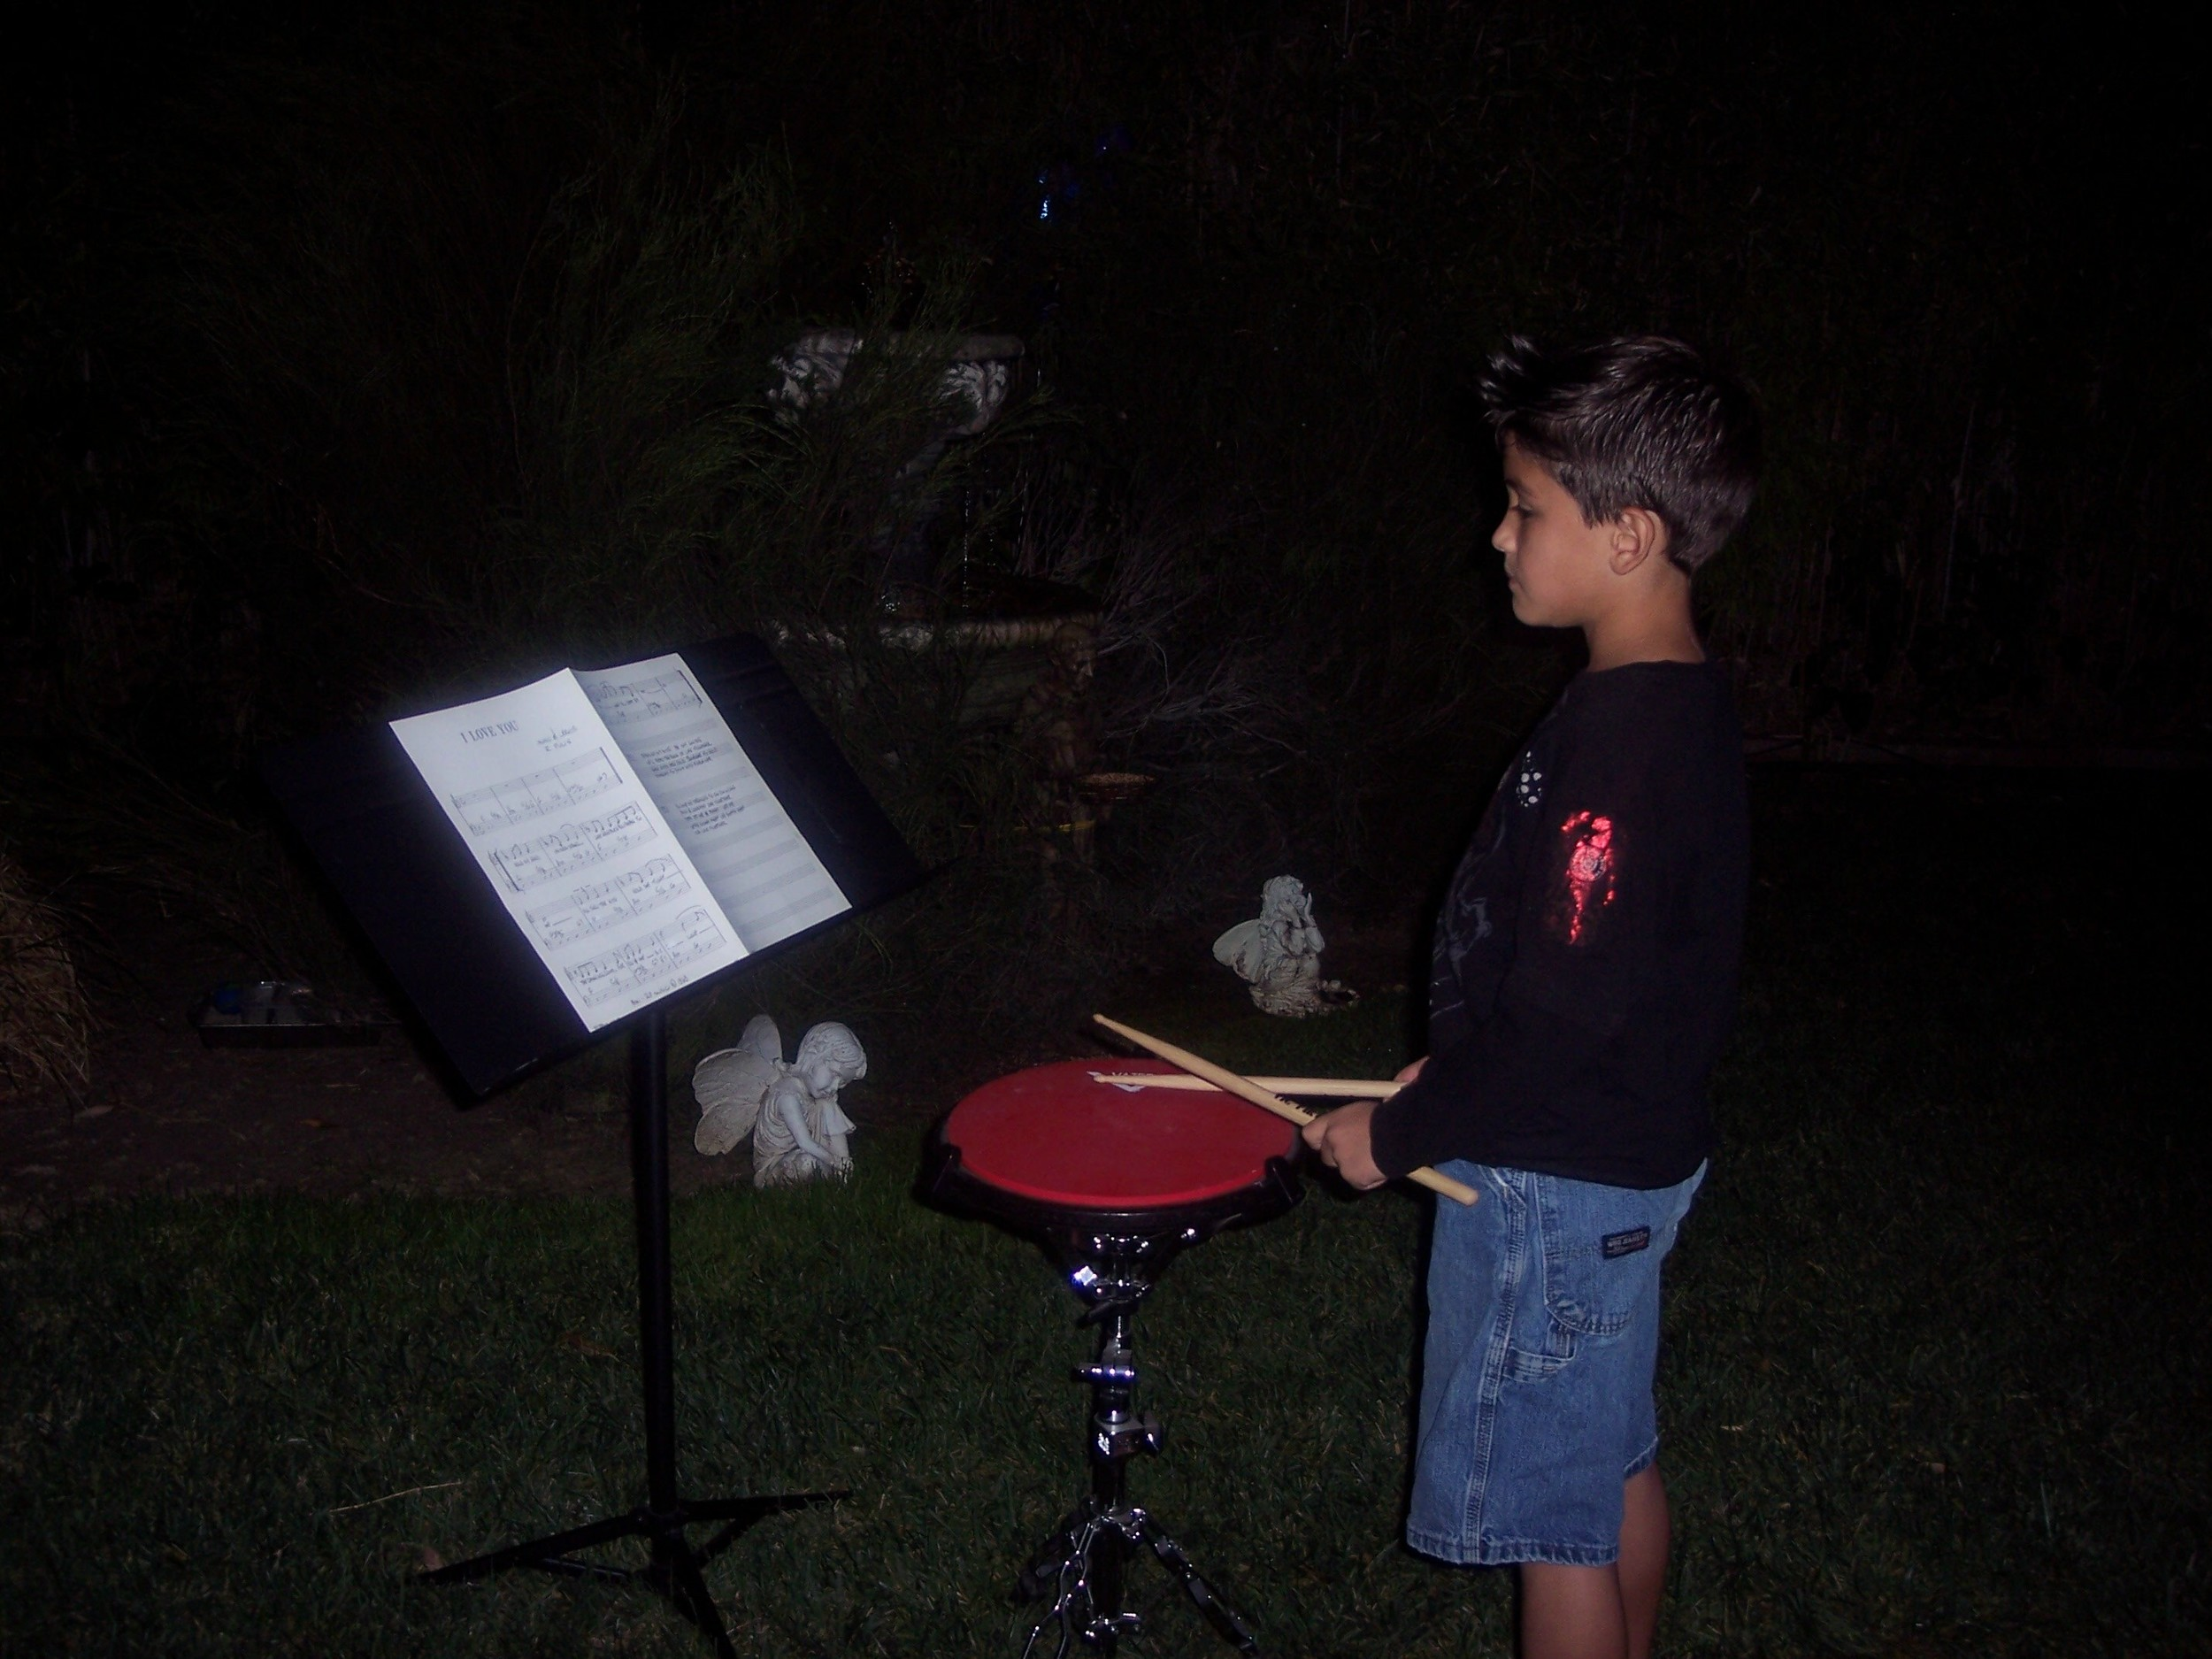 Grandson Jovanny reading music and practicing drum pad